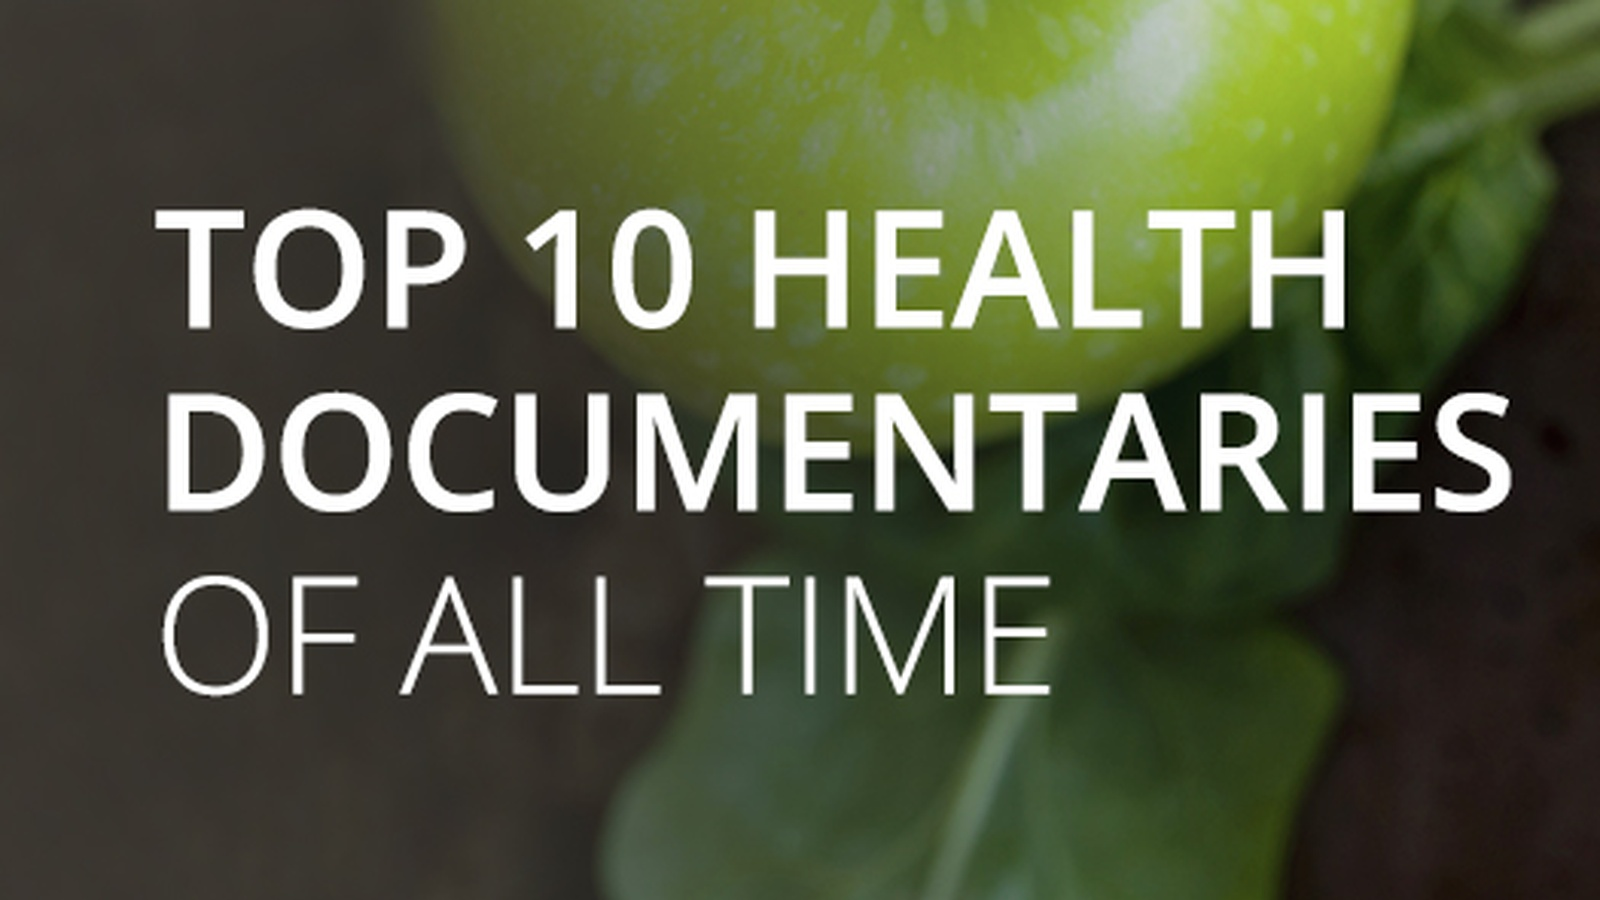 Top 10 Health Documentaries Of All Time